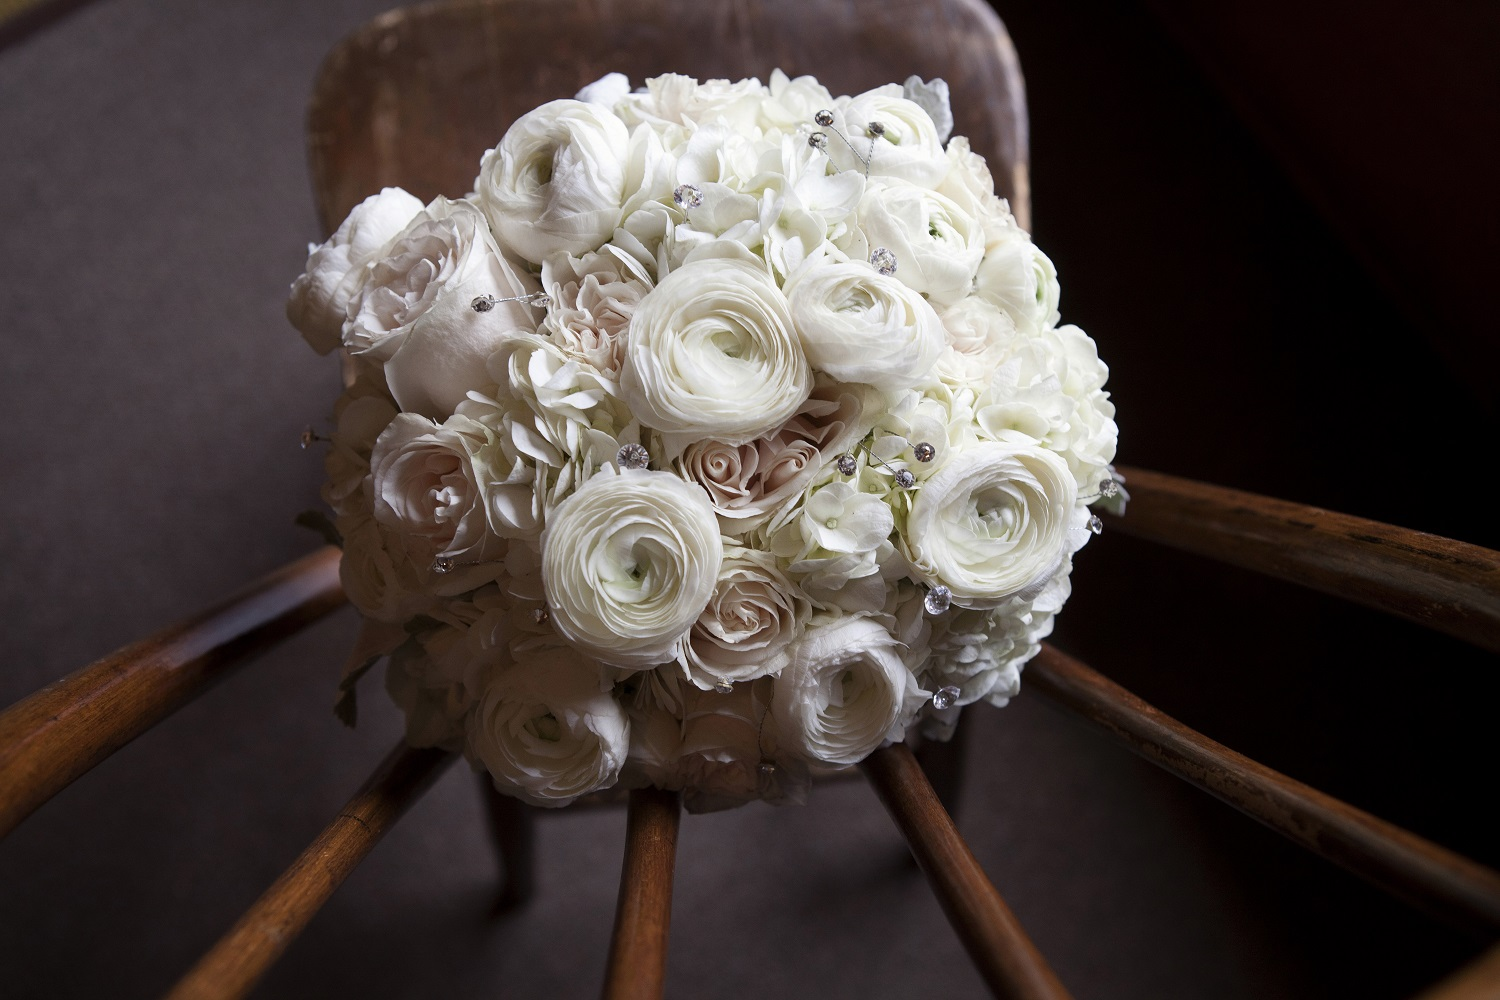 Wedding bouquet white flowers ranunculus flowers hydrangea wedding bouquet white flowers ranunculus flowers hydrangea wedding bouquet minneapolis silverwood park bridal bouquet round bouquet mightylinksfo